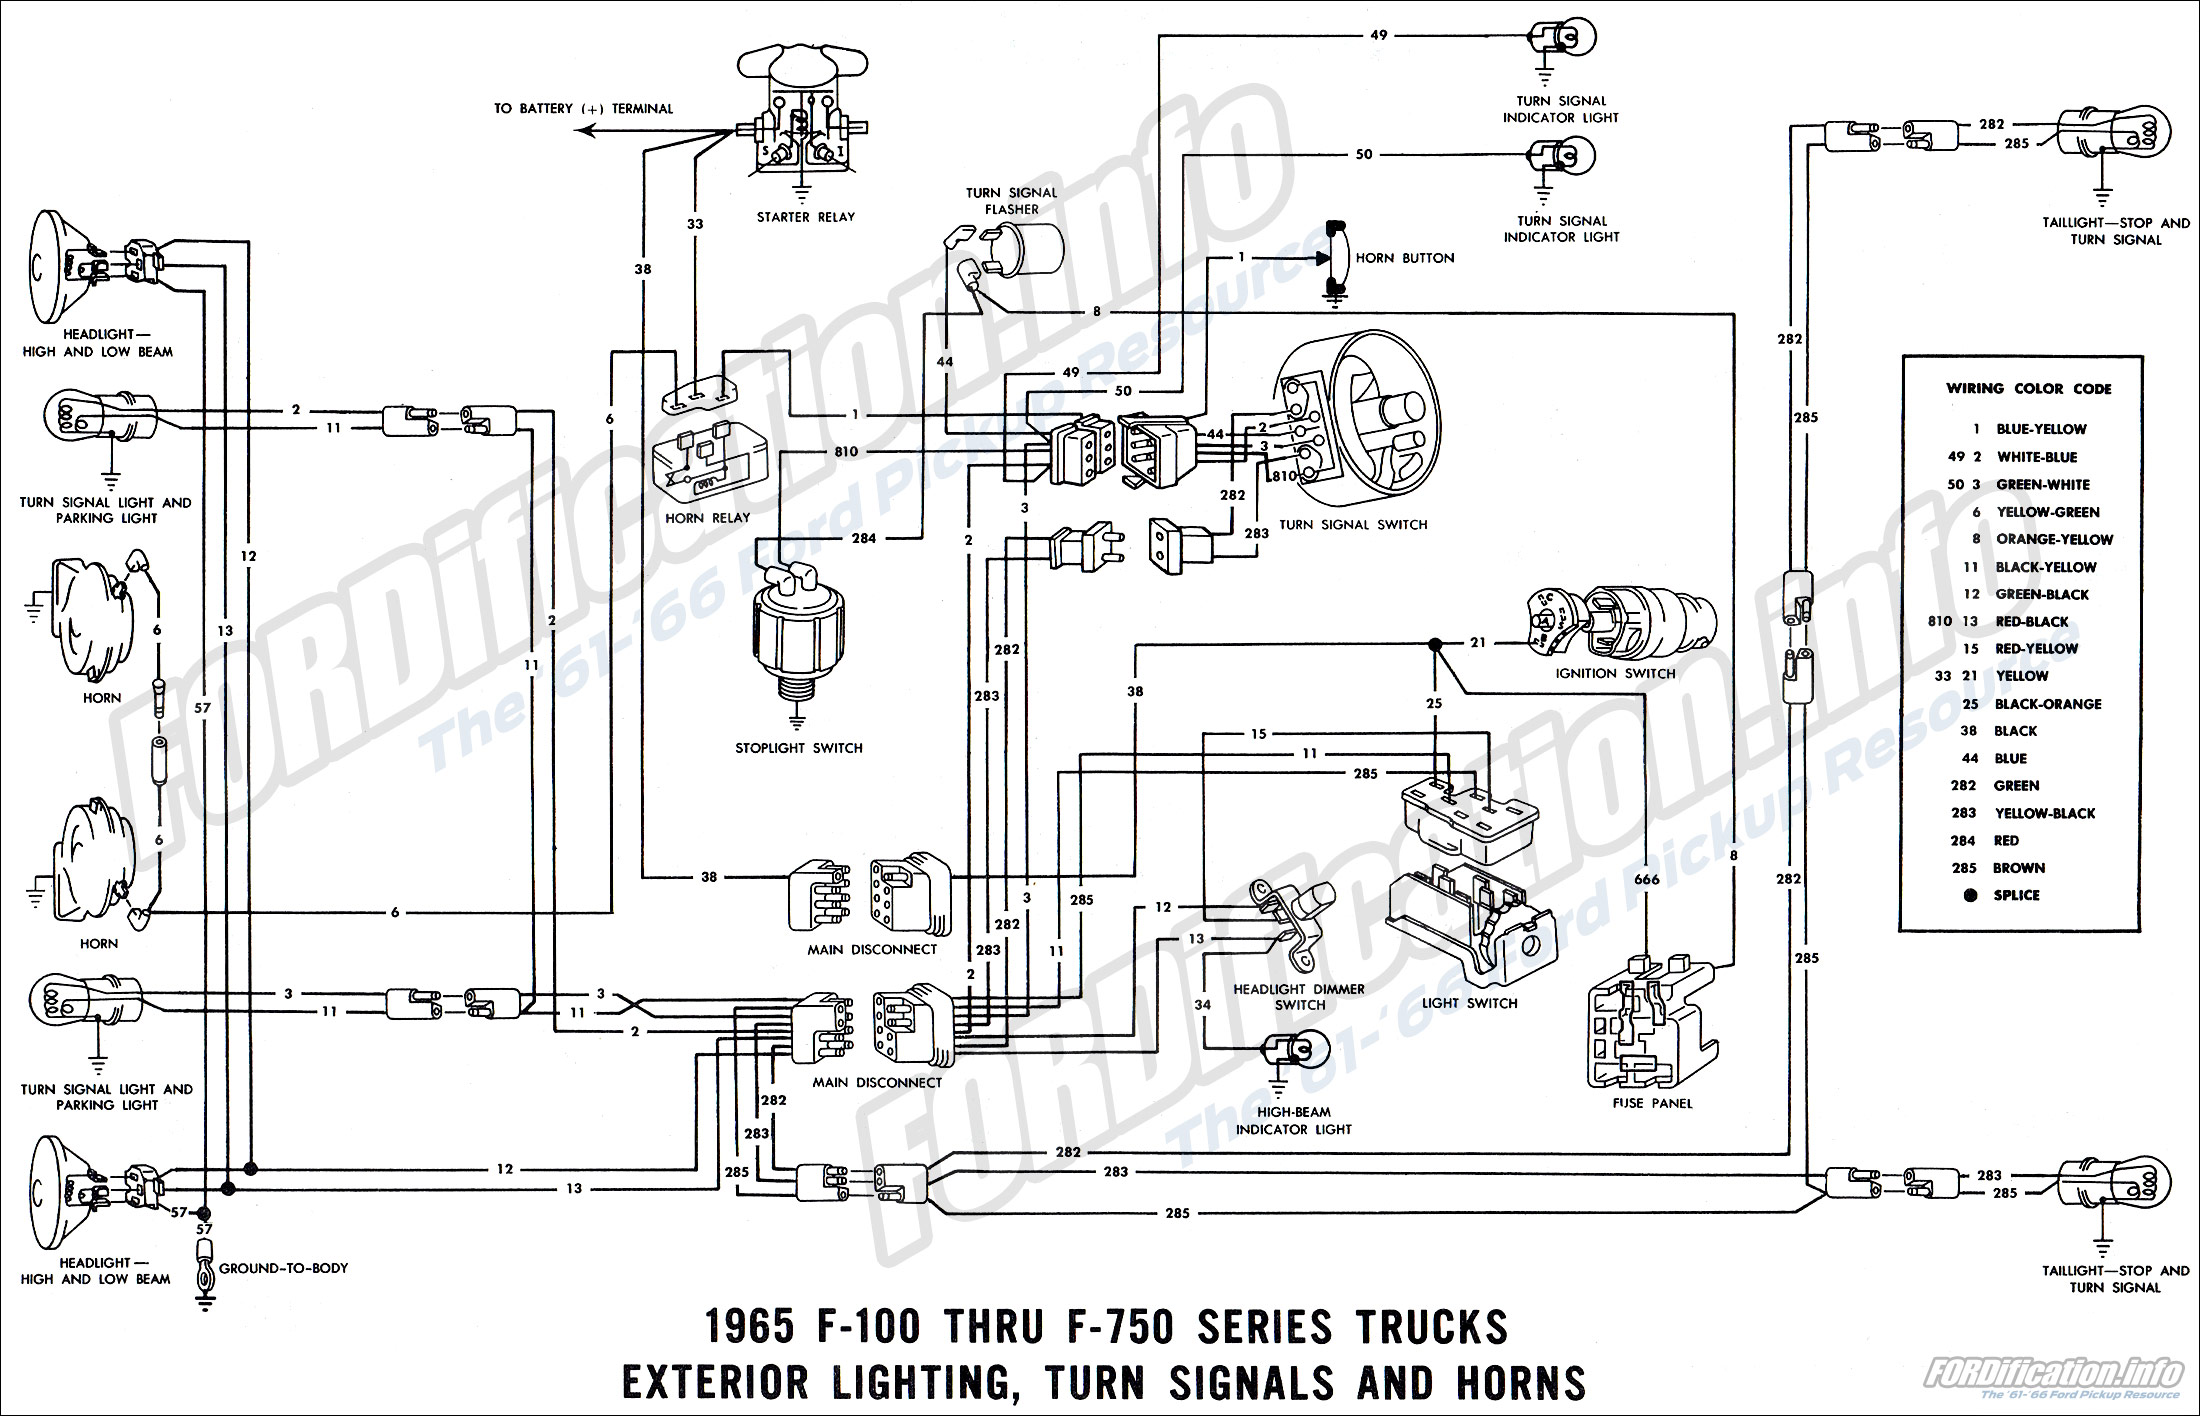 ford f100 wiring harness diagrams 1965 ford truck wiring diagrams - fordification.info - the ...